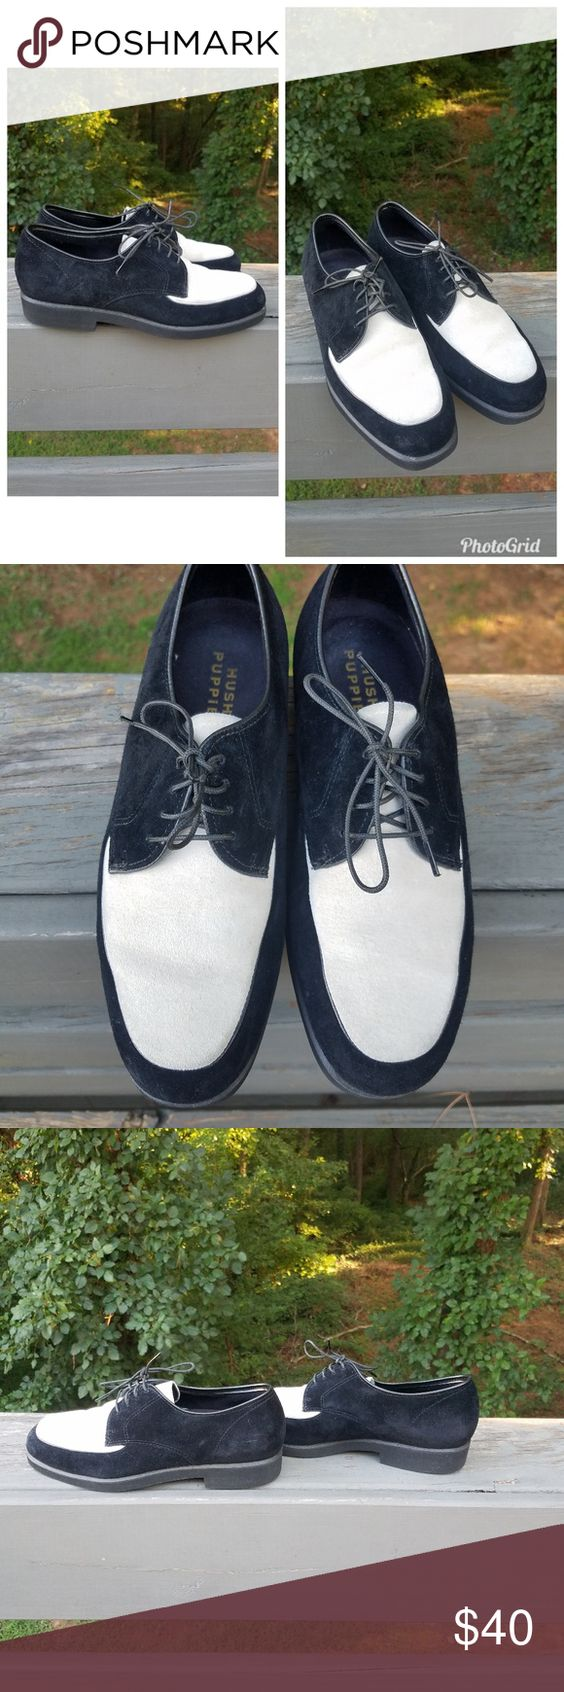 Hush Puppies Black And White Suede Shoes Lace Up Black And White